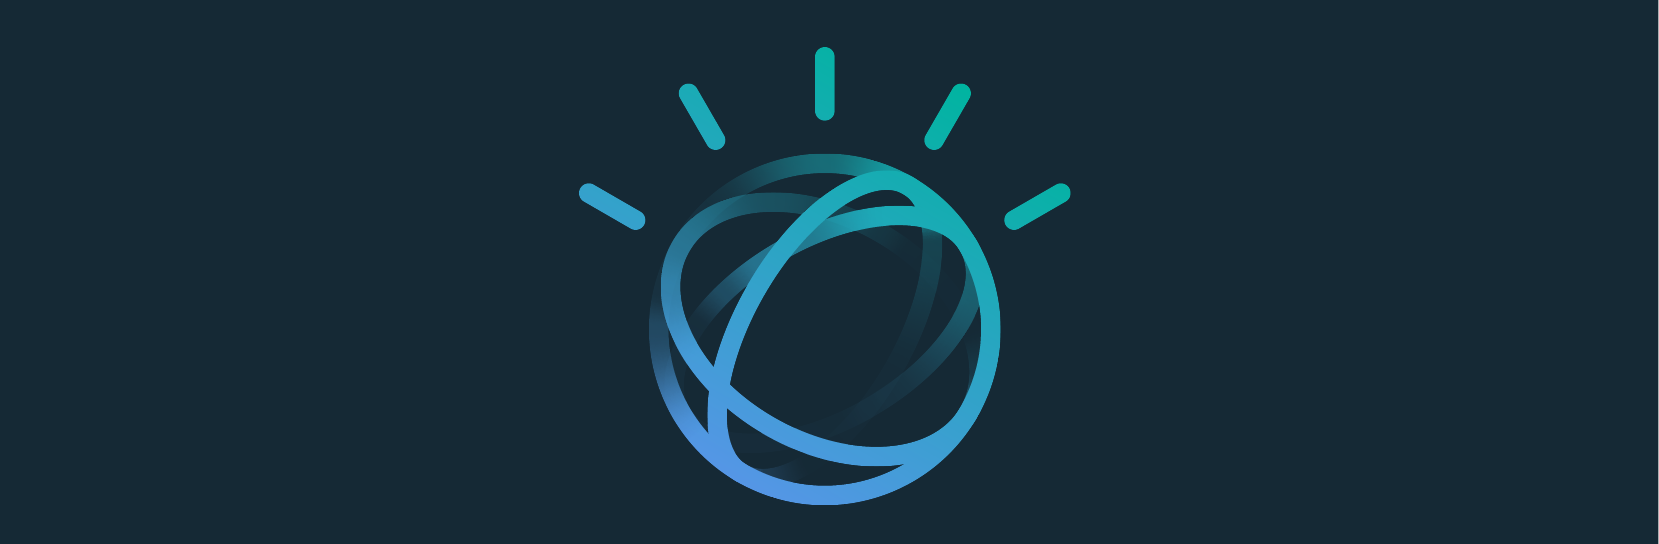 Navigating IBM's Data and AI Products